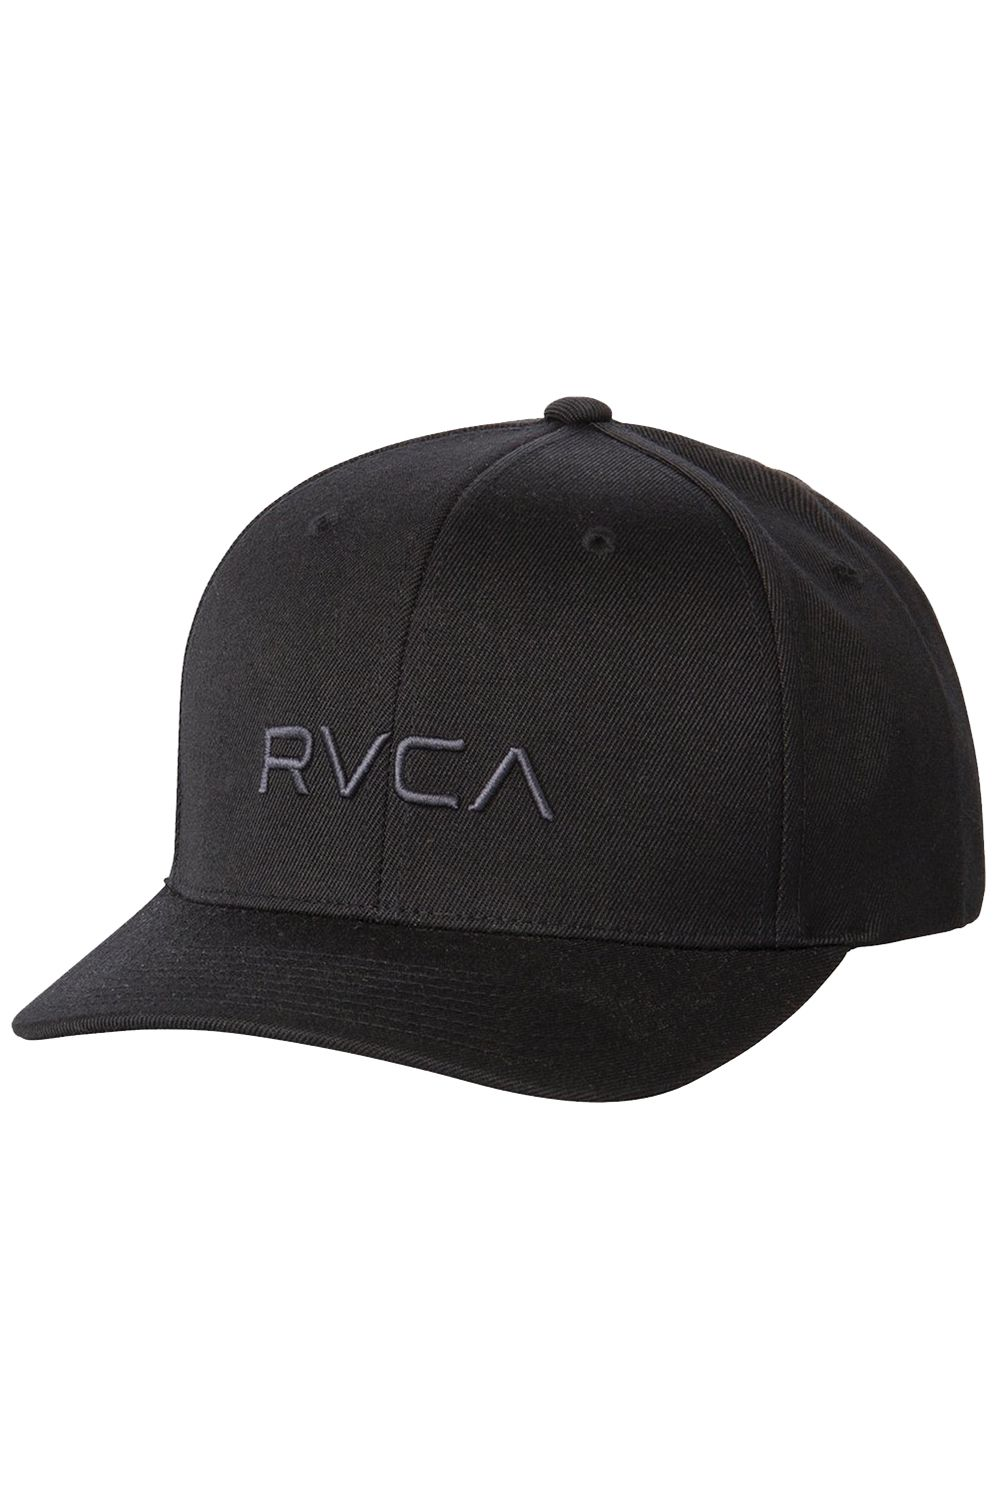 Bone RVCA RVCA FLEX FIT Black